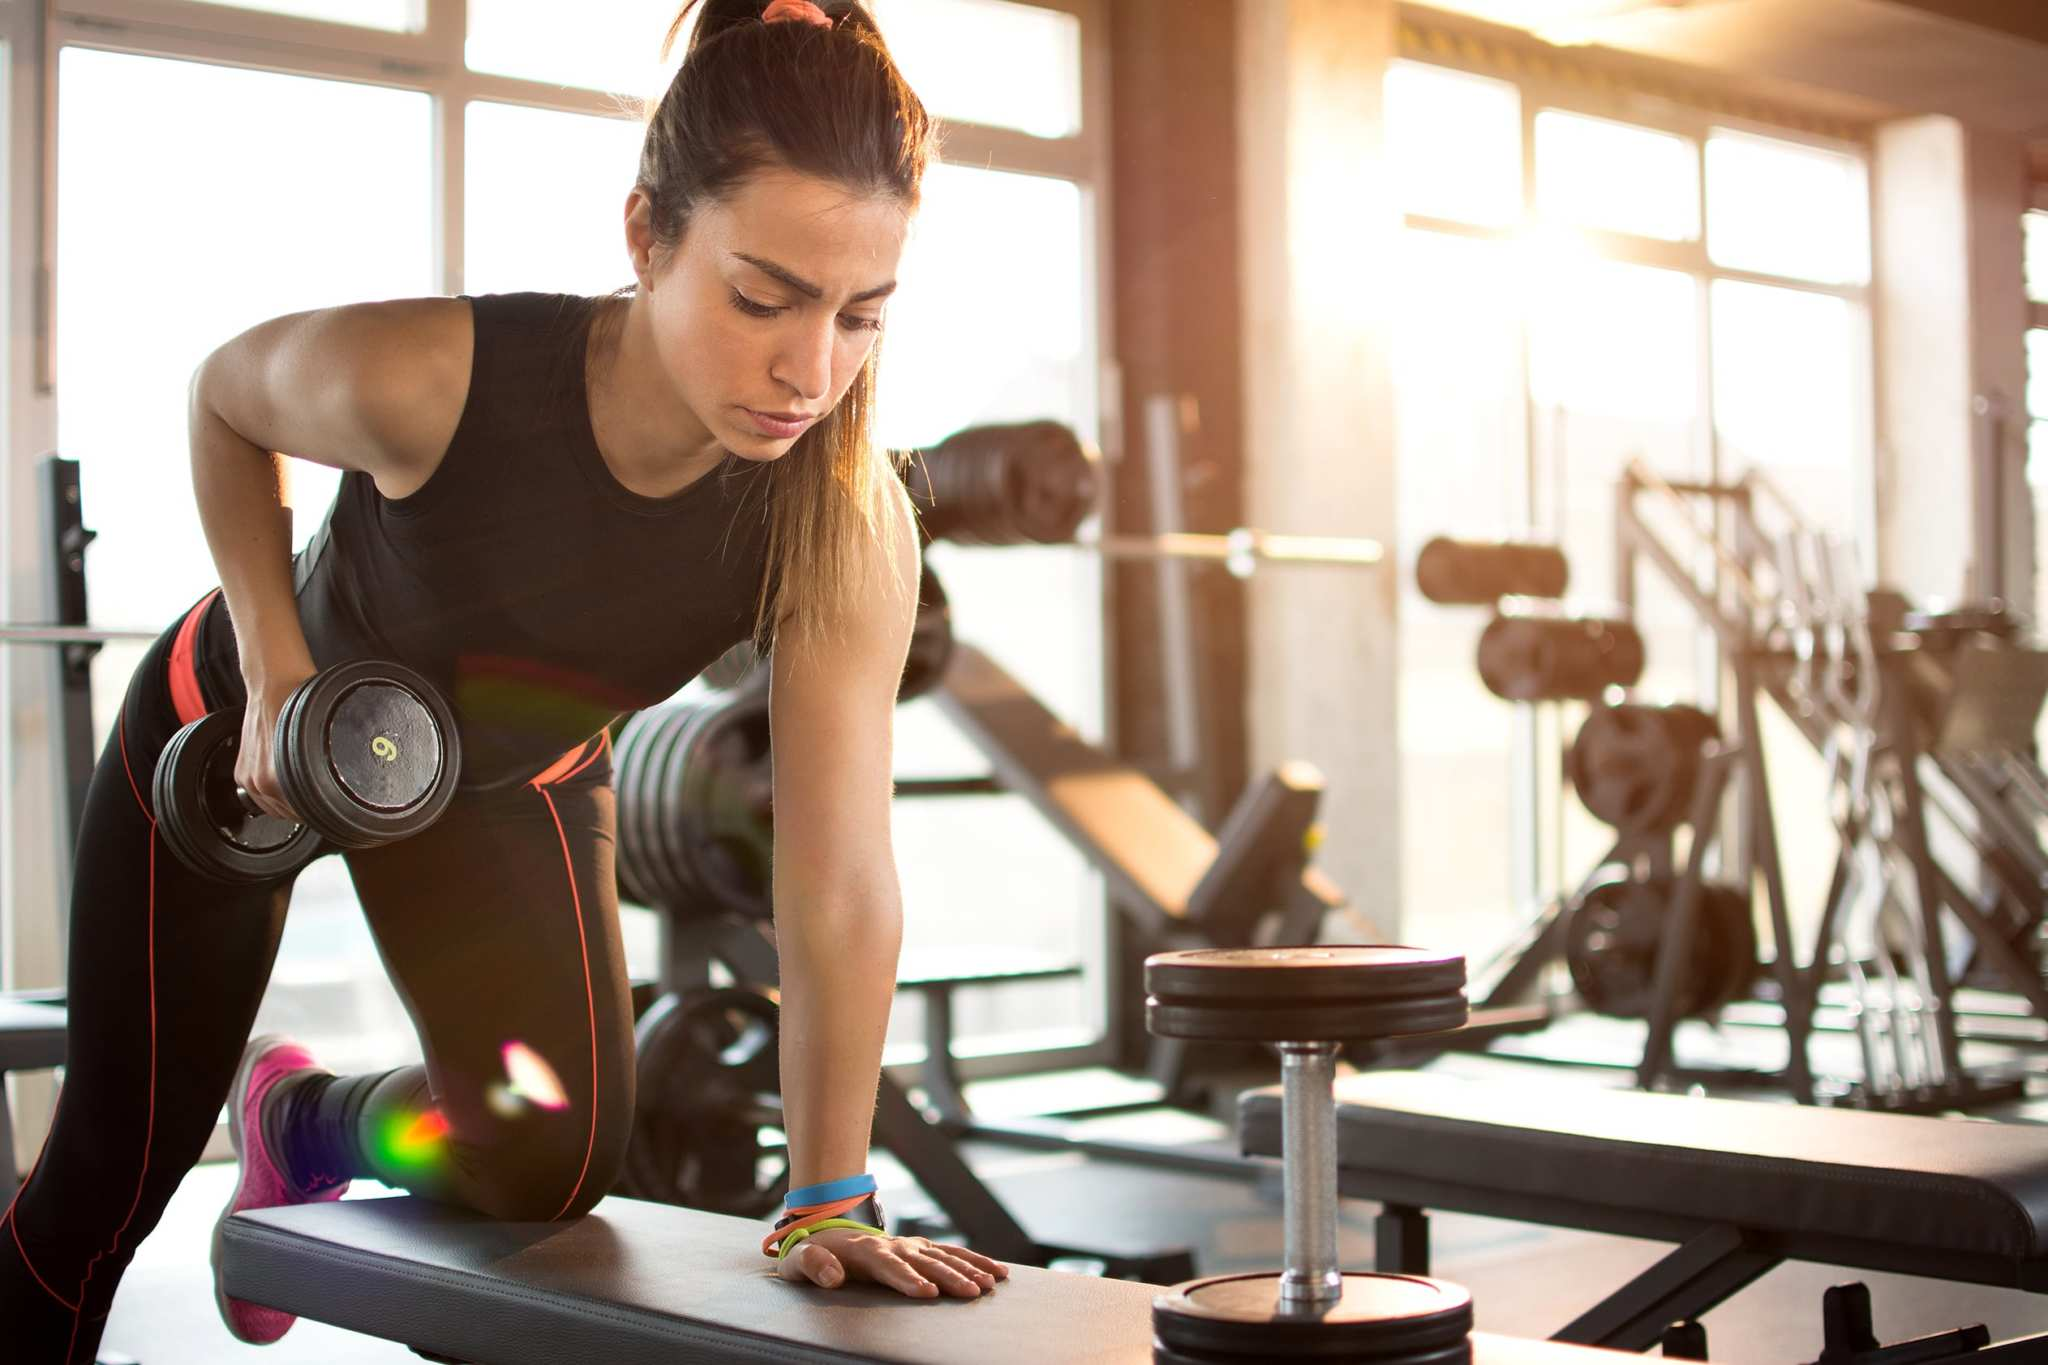 A woman works out with handheld weights in a gym.